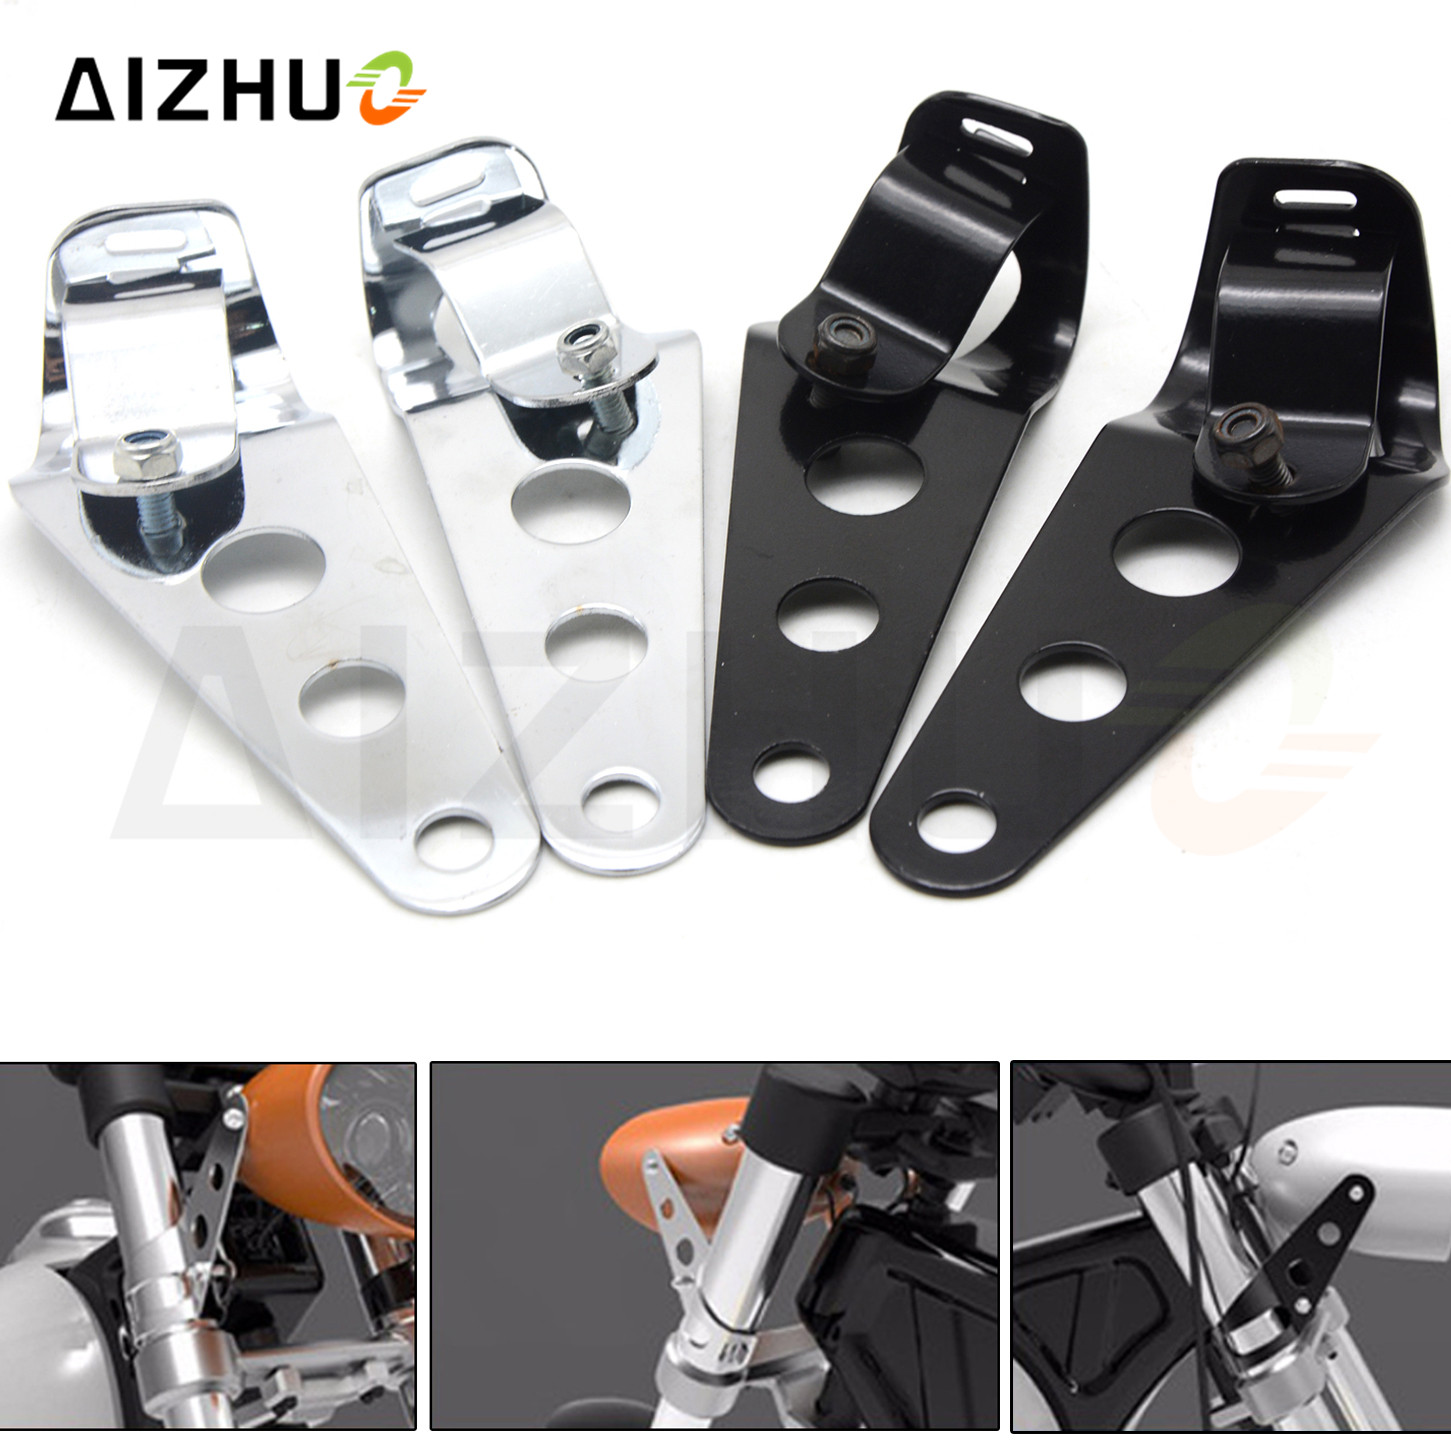 35mm 43mm Fork Chopper Motorcycle Accessories Cafe Racer Headlight Bracket For Bmw F650GS 700GS F800GS F800GT F800R F800S F800ST in Covers Ornamental Mouldings from Automobiles Motorcycles